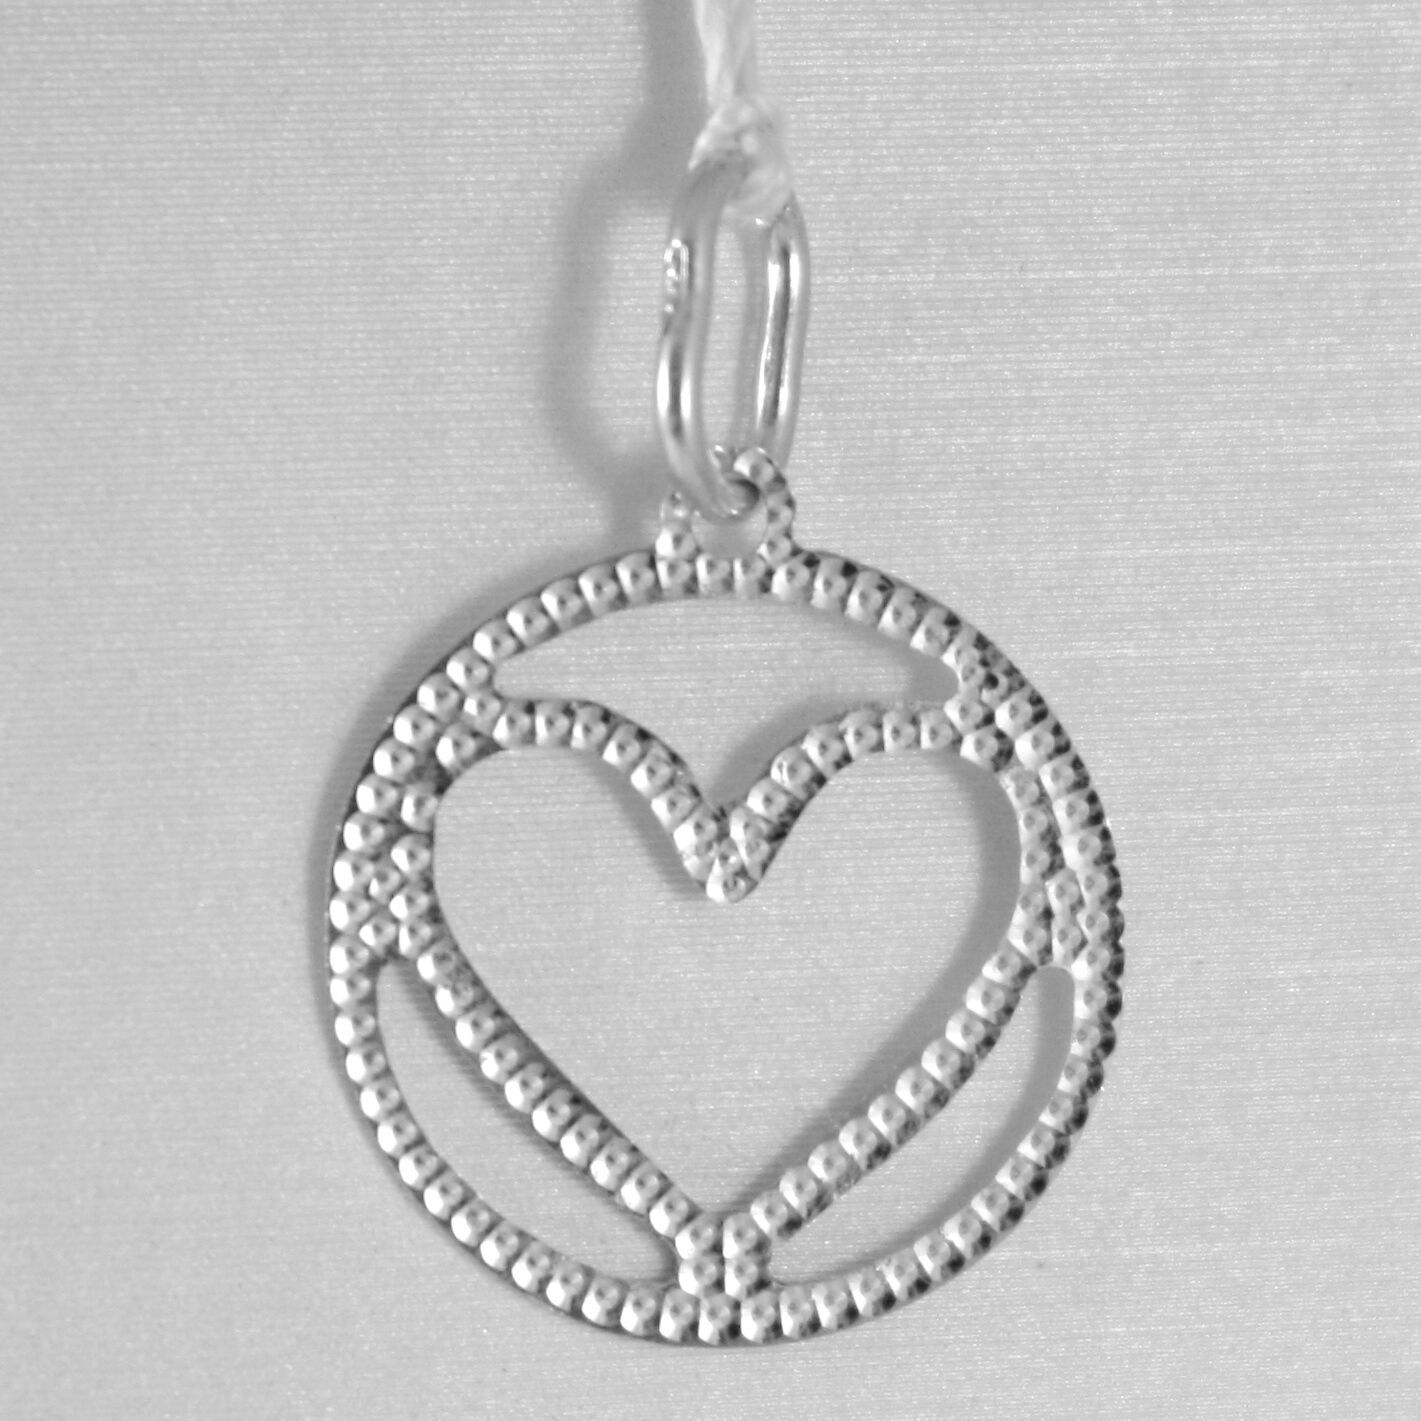 18K WHITE GOLD HEART PENDANT CHARM 22 MM FINELY WORKED, BRIGHT, MADE IN ITALY